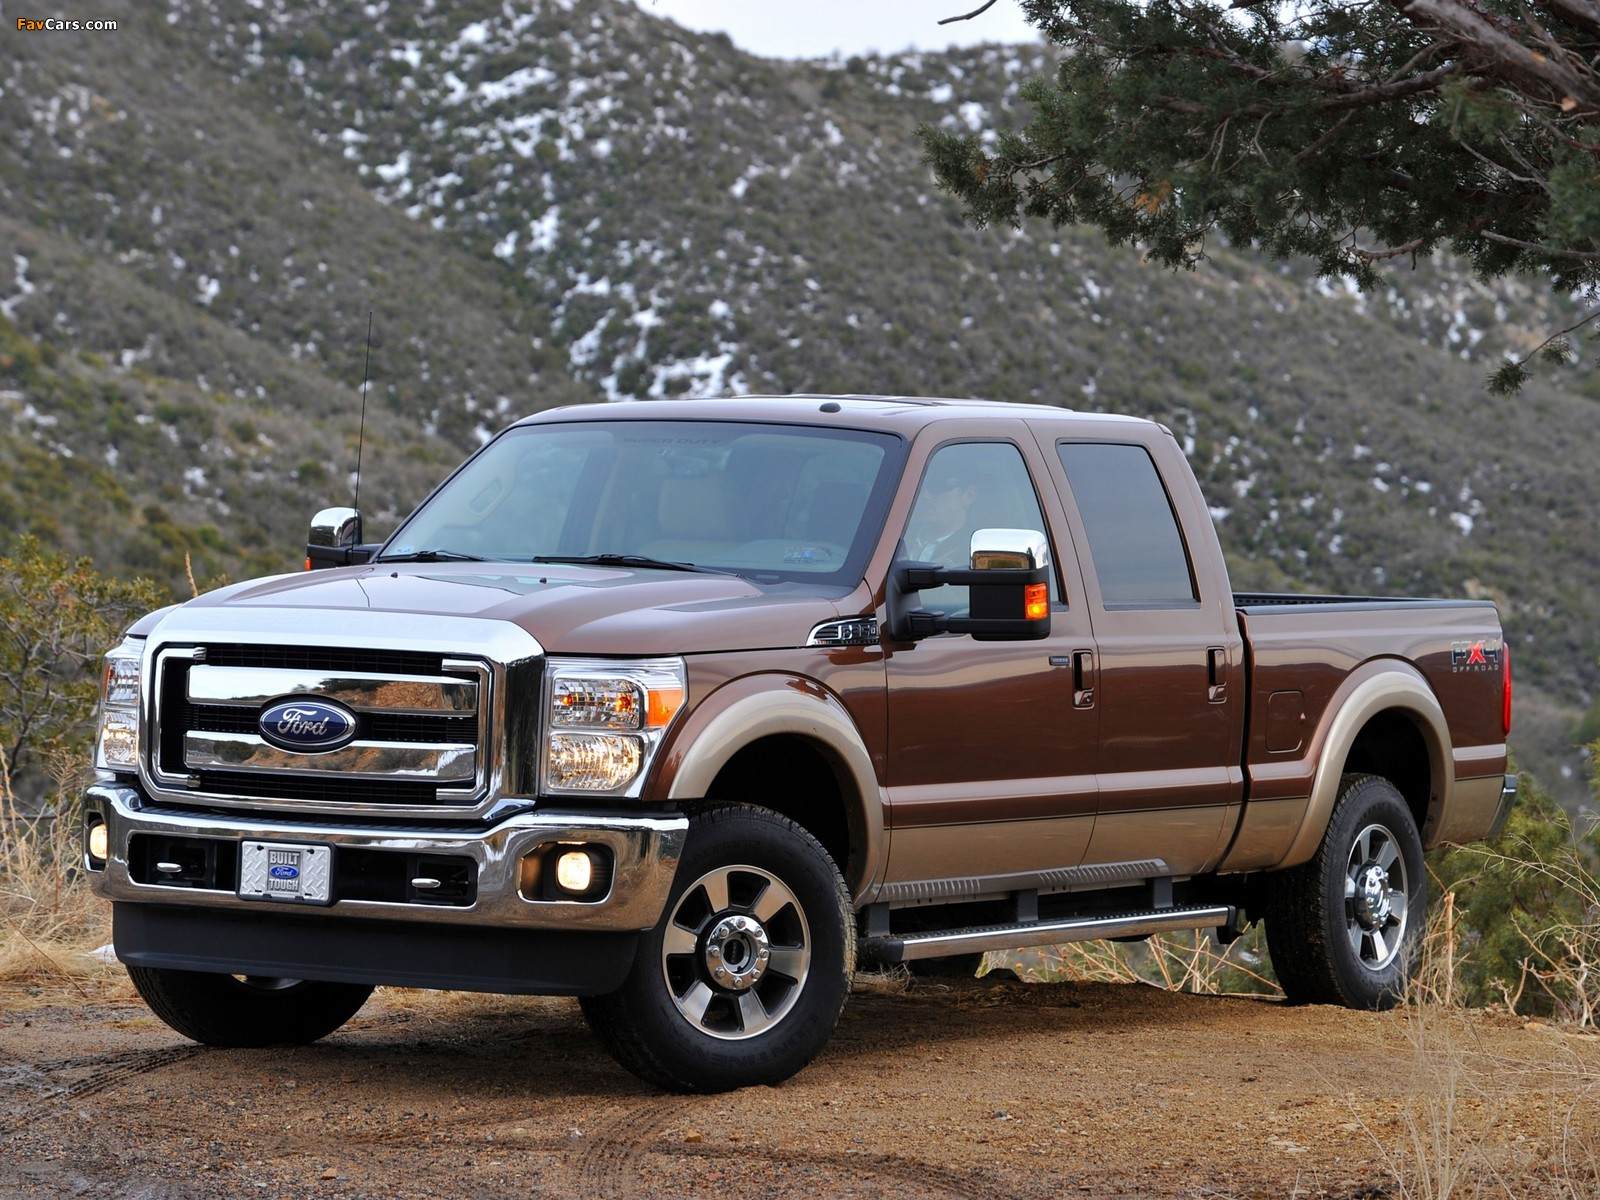 Ford F 350 Super Duty Crew Cab 2010 Wallpapers 1600x1200